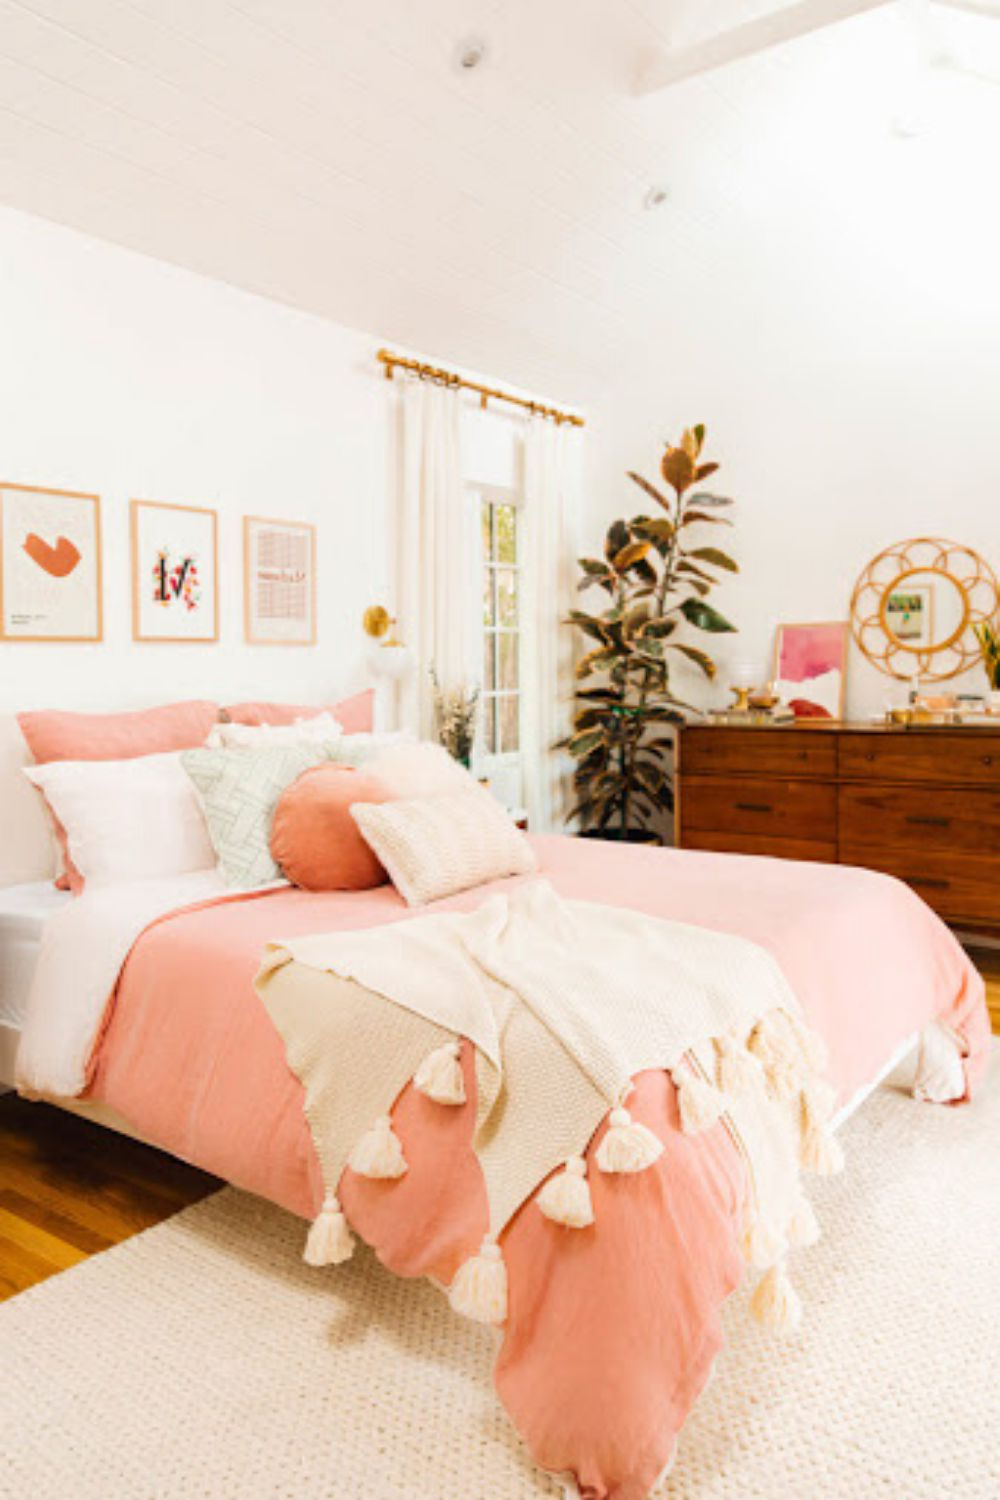 Pin On Room Ideas For Women